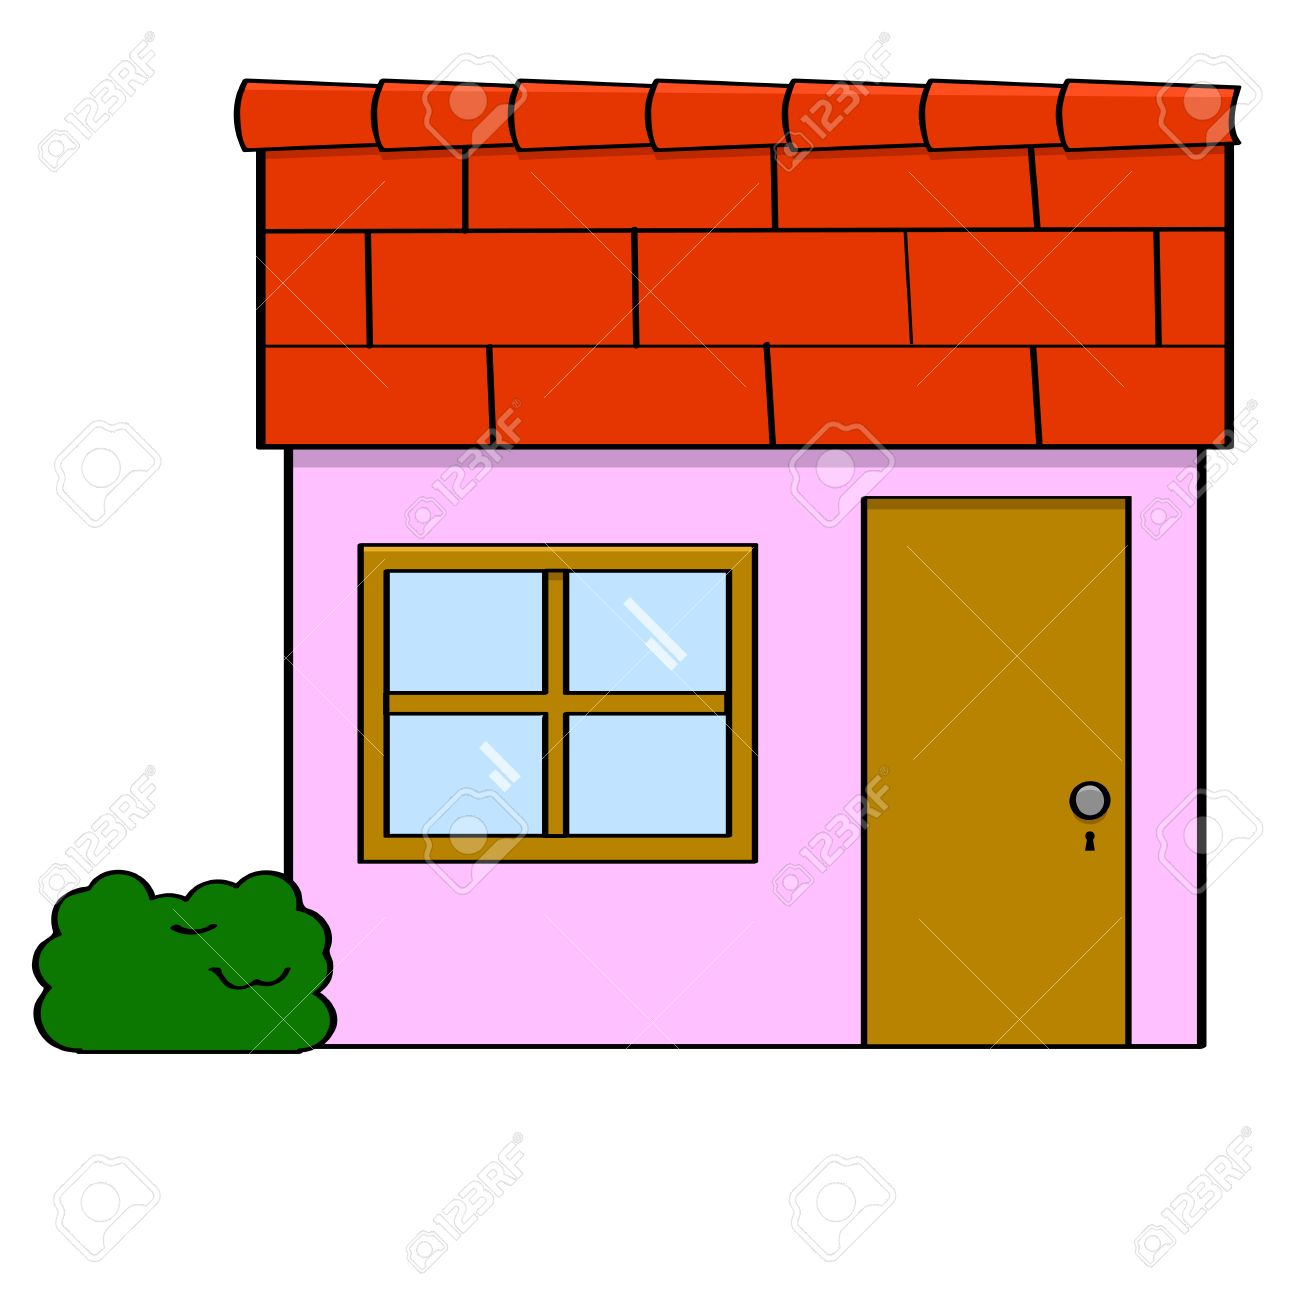 small house cartoon. cartoon illustration of a small simple house with door and window stock  sc 1 st  Hedgy.space Is a Great Content!!! & Small House Cartoon. Small Fairy House Cartoon G - Hedgy.space pezcame.com